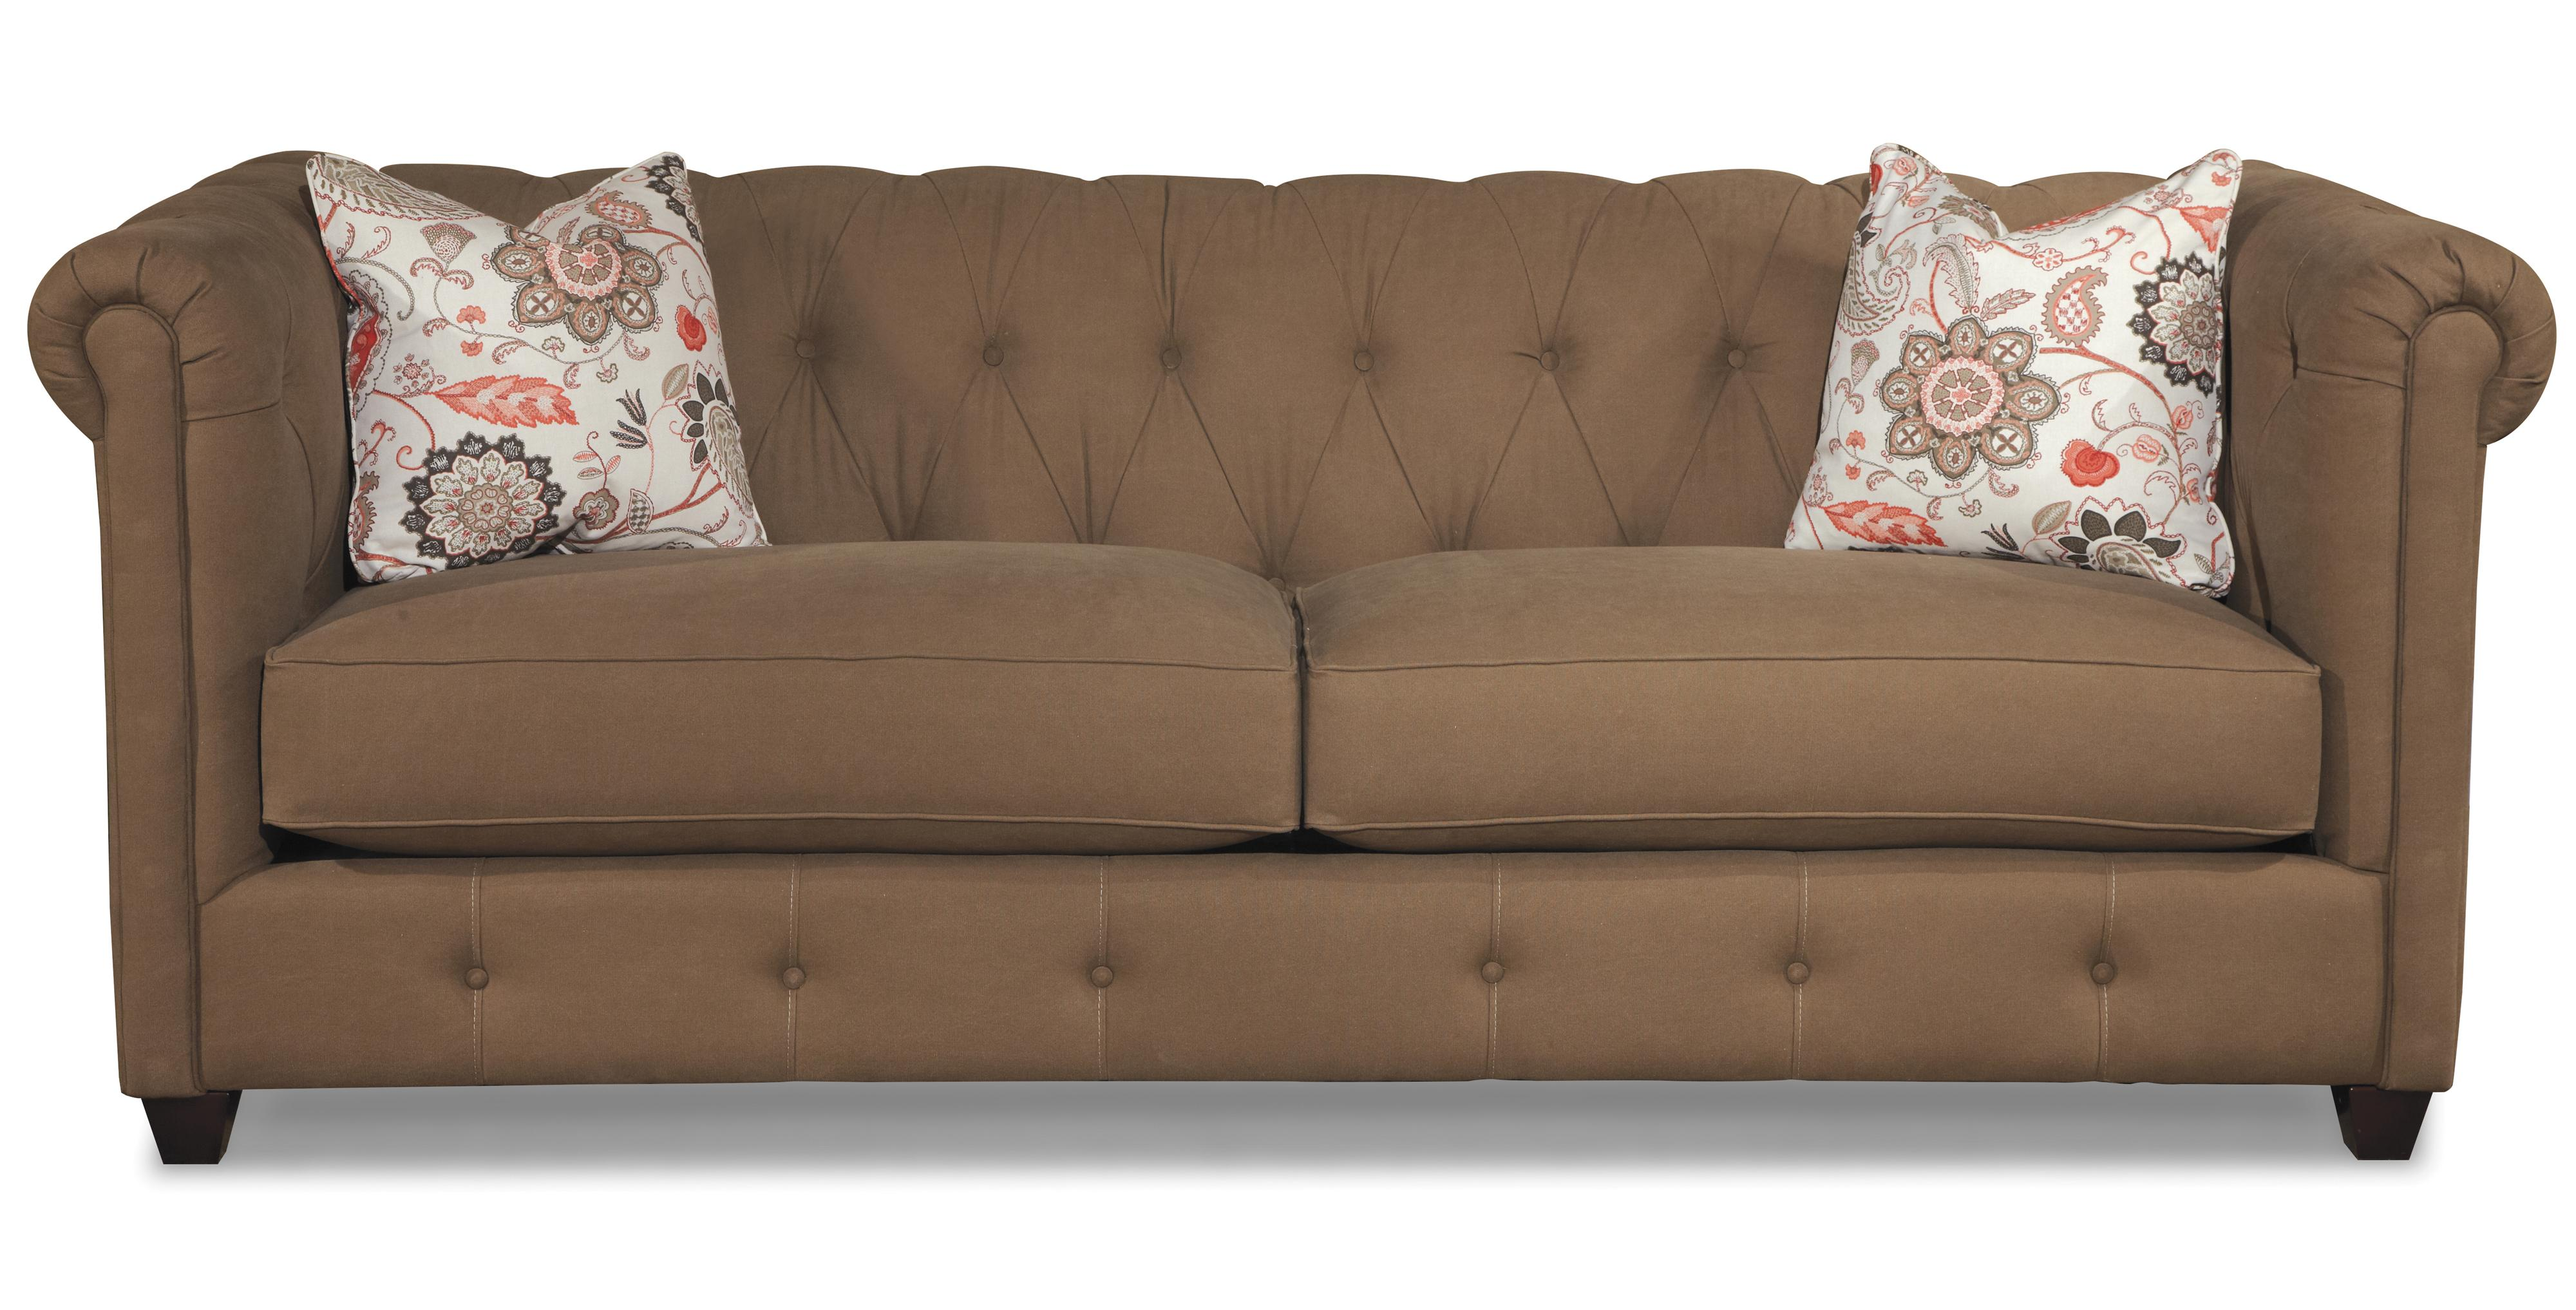 Klaussner Beech Mountain Traditional Chesterfield Sofa with Downblend Cushions Olinde's